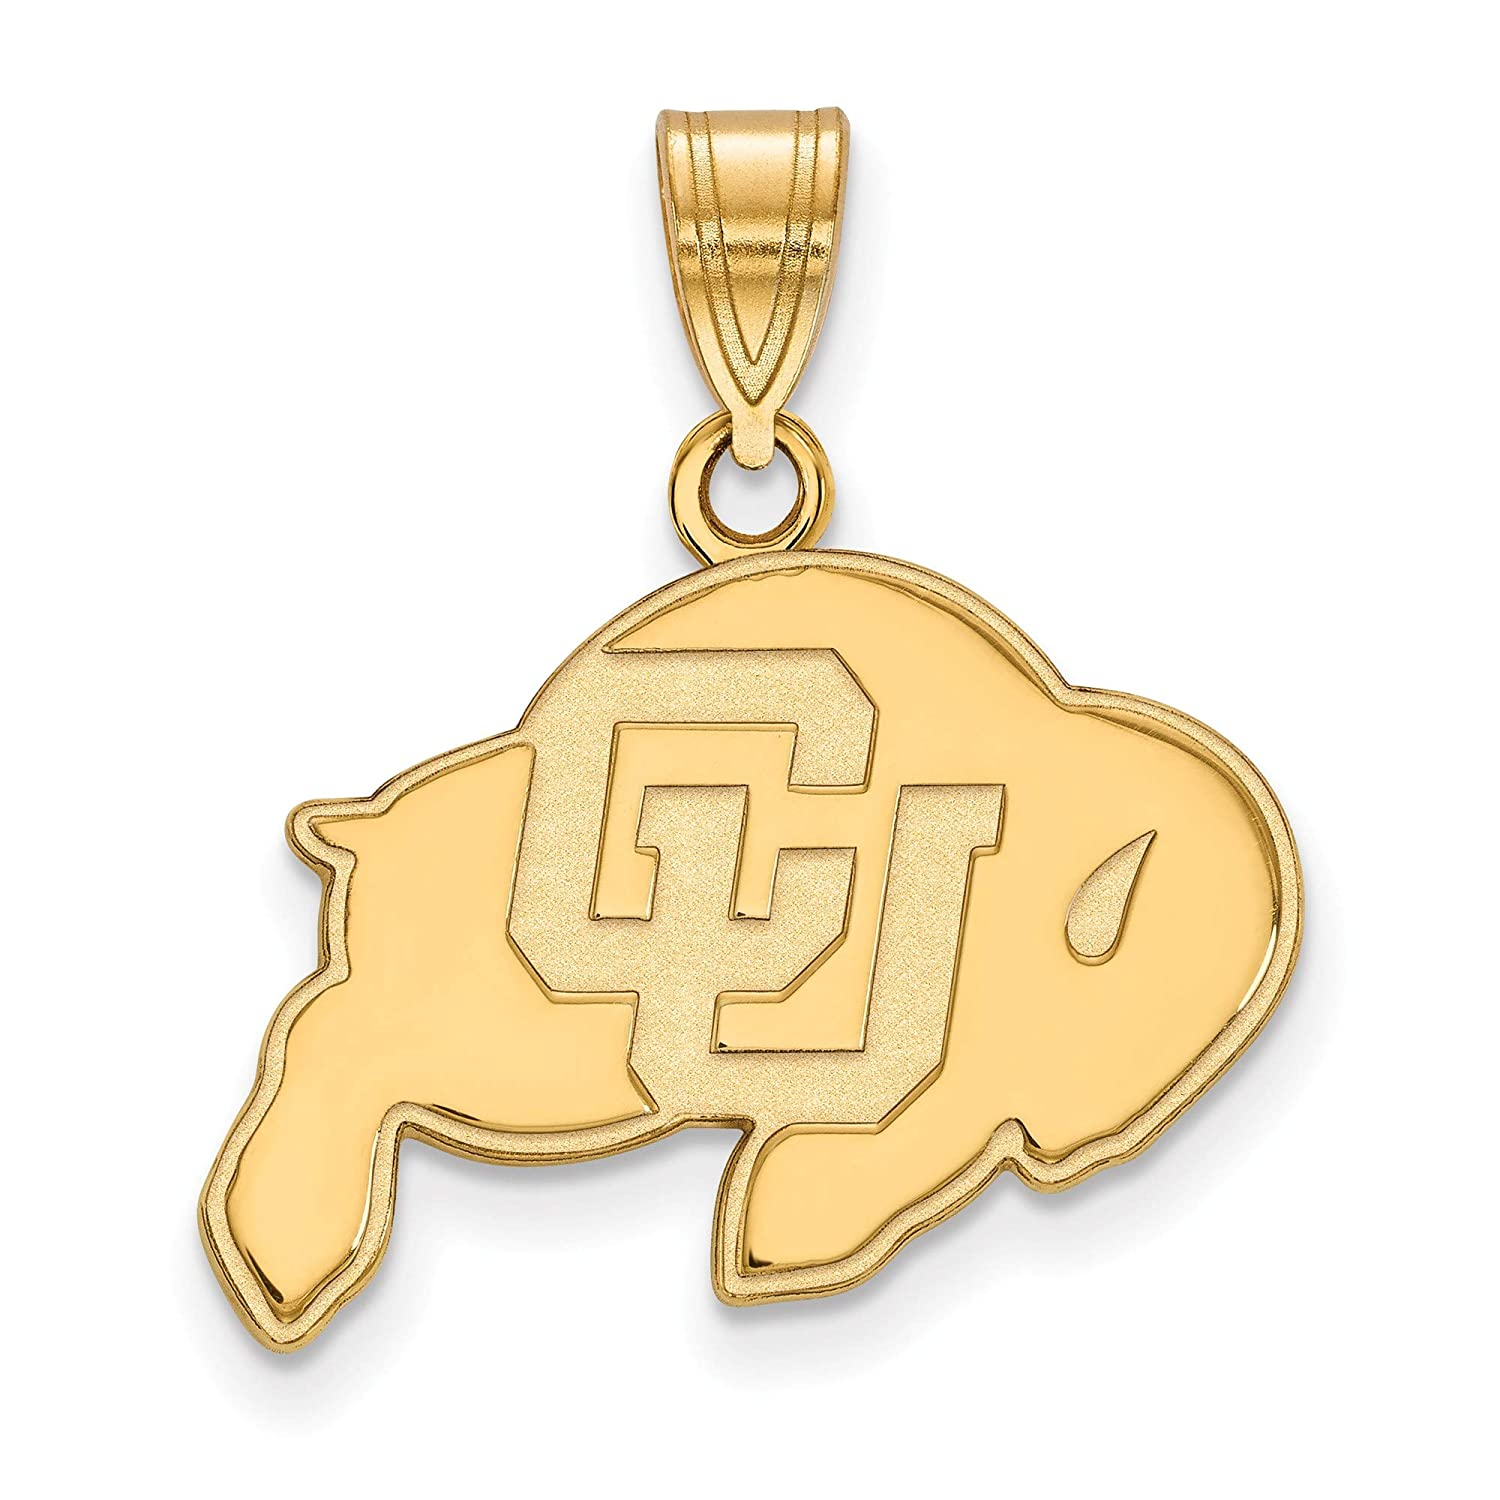 Kira Riley Gold Plated University of Colorado Medium Pendant for Chains and Necklaces